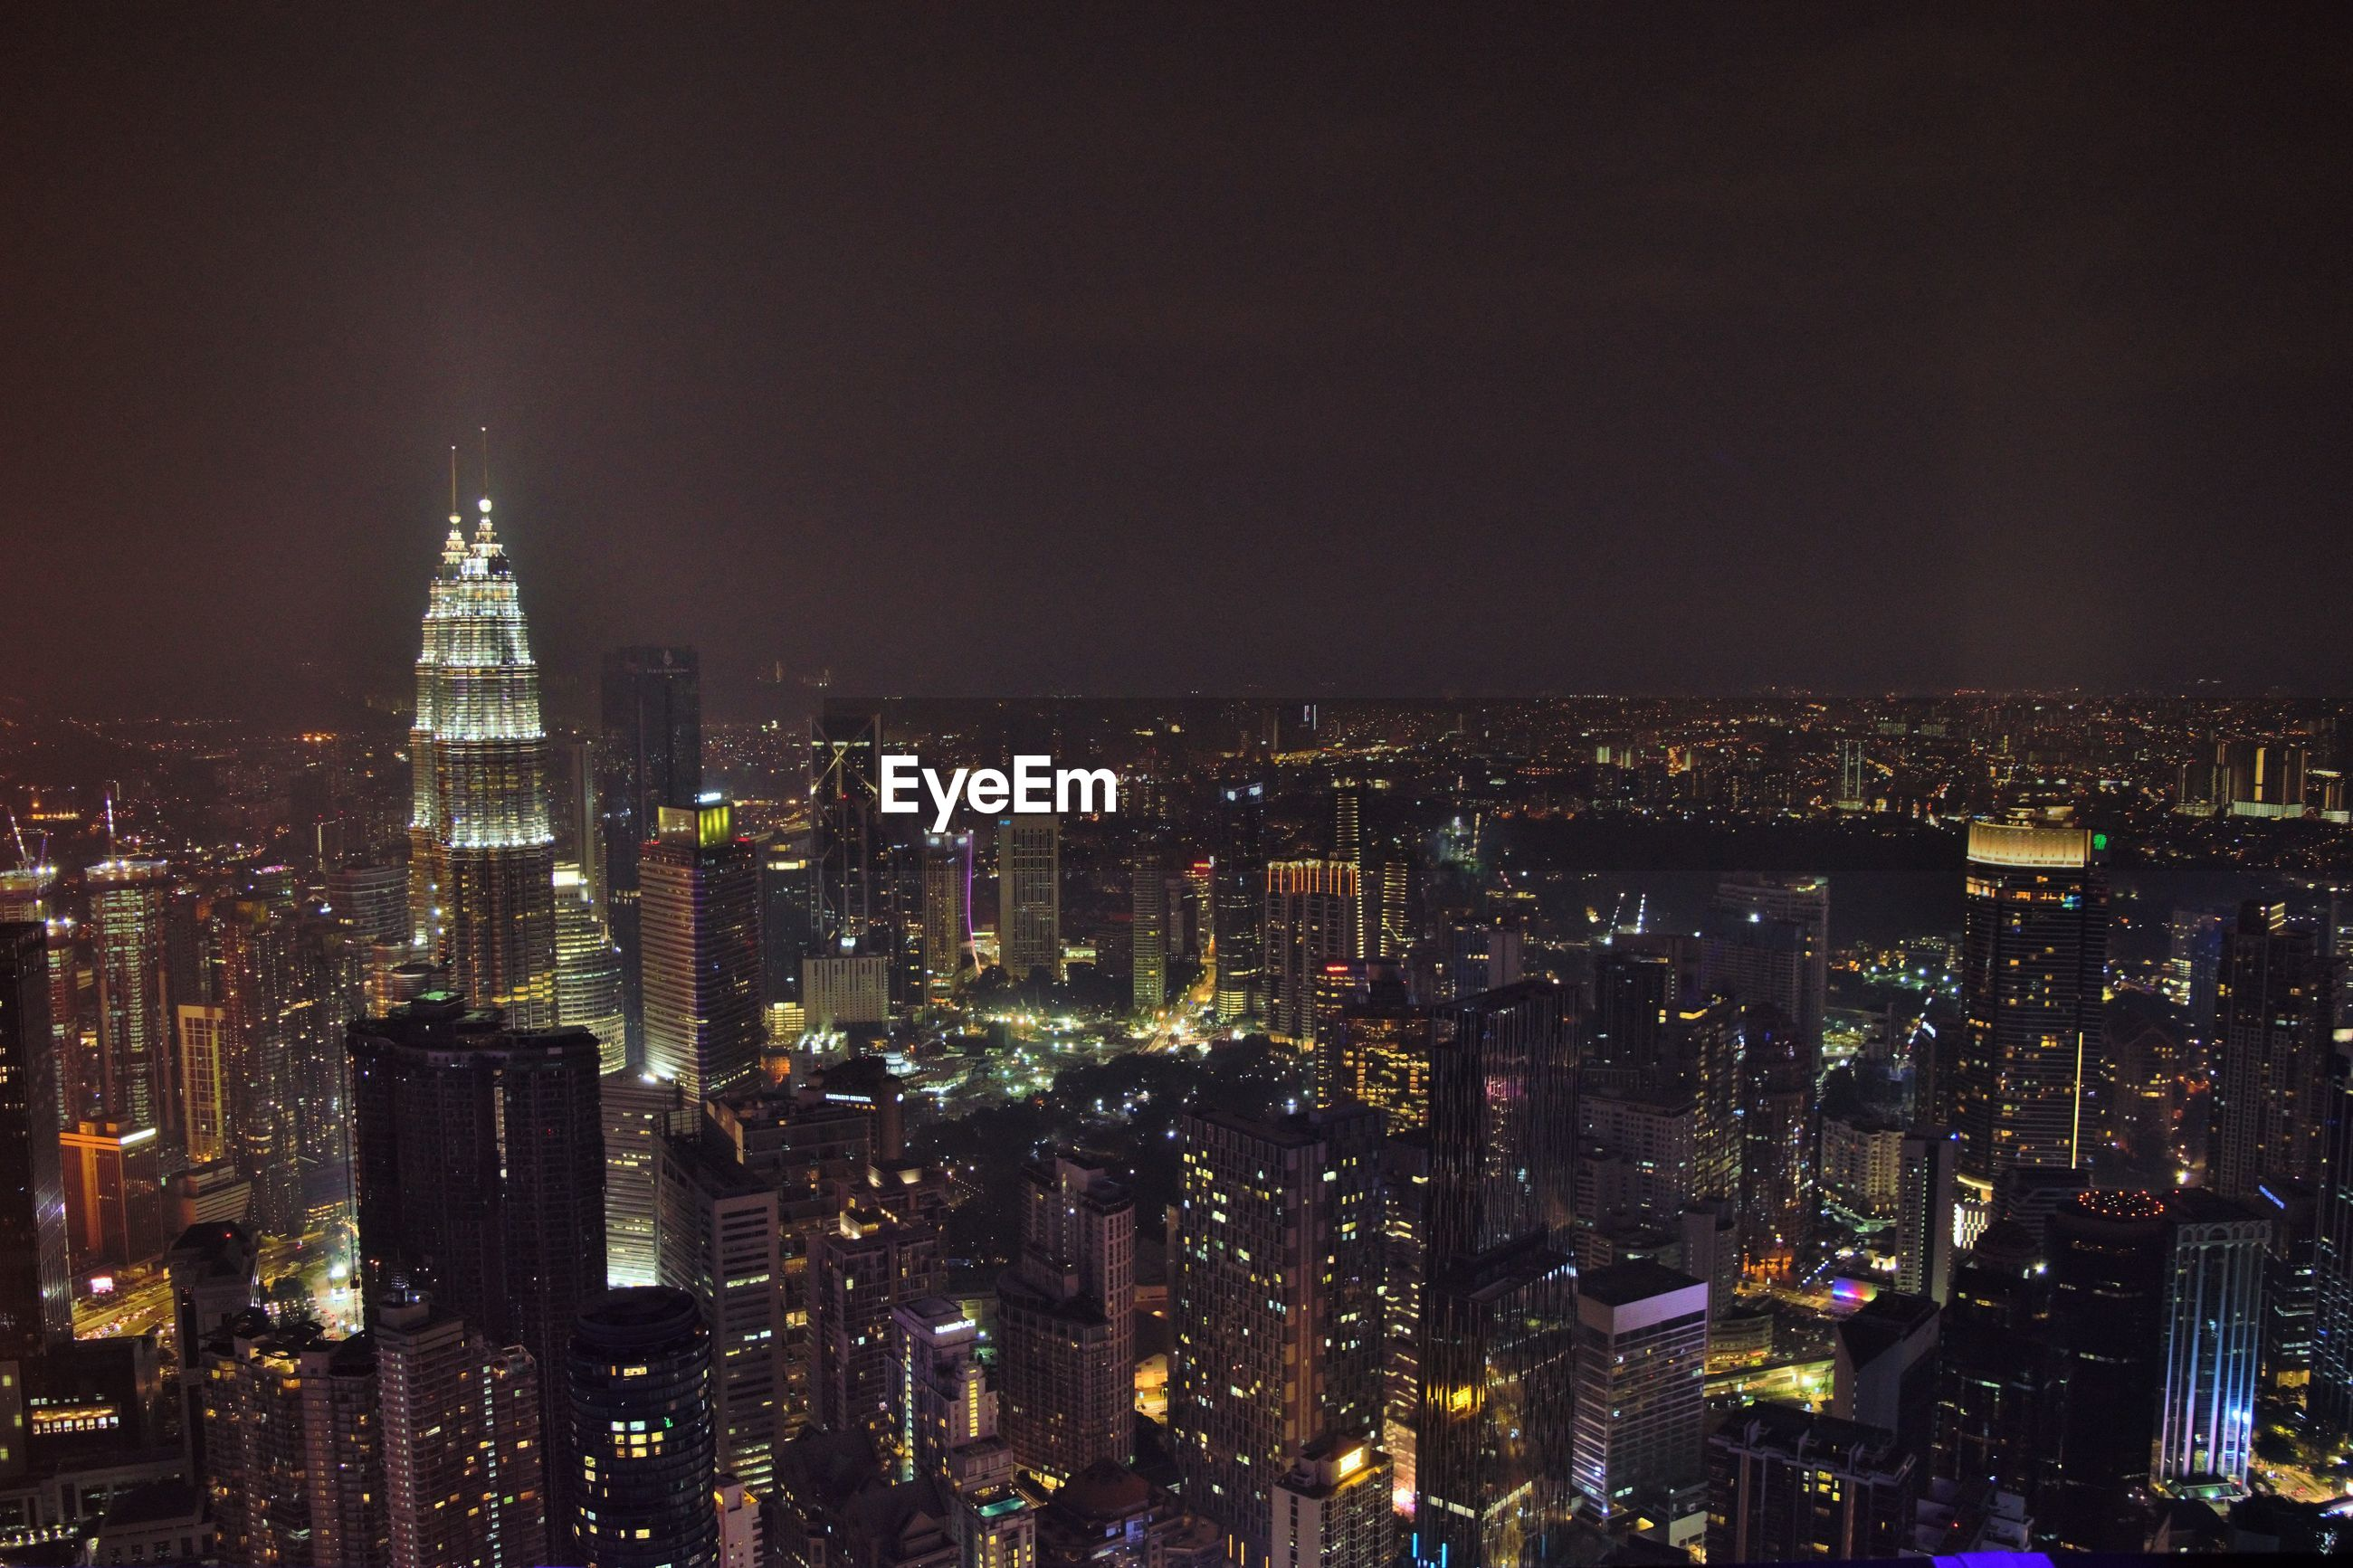 AERIAL VIEW OF CITY BUILDINGS AT NIGHT